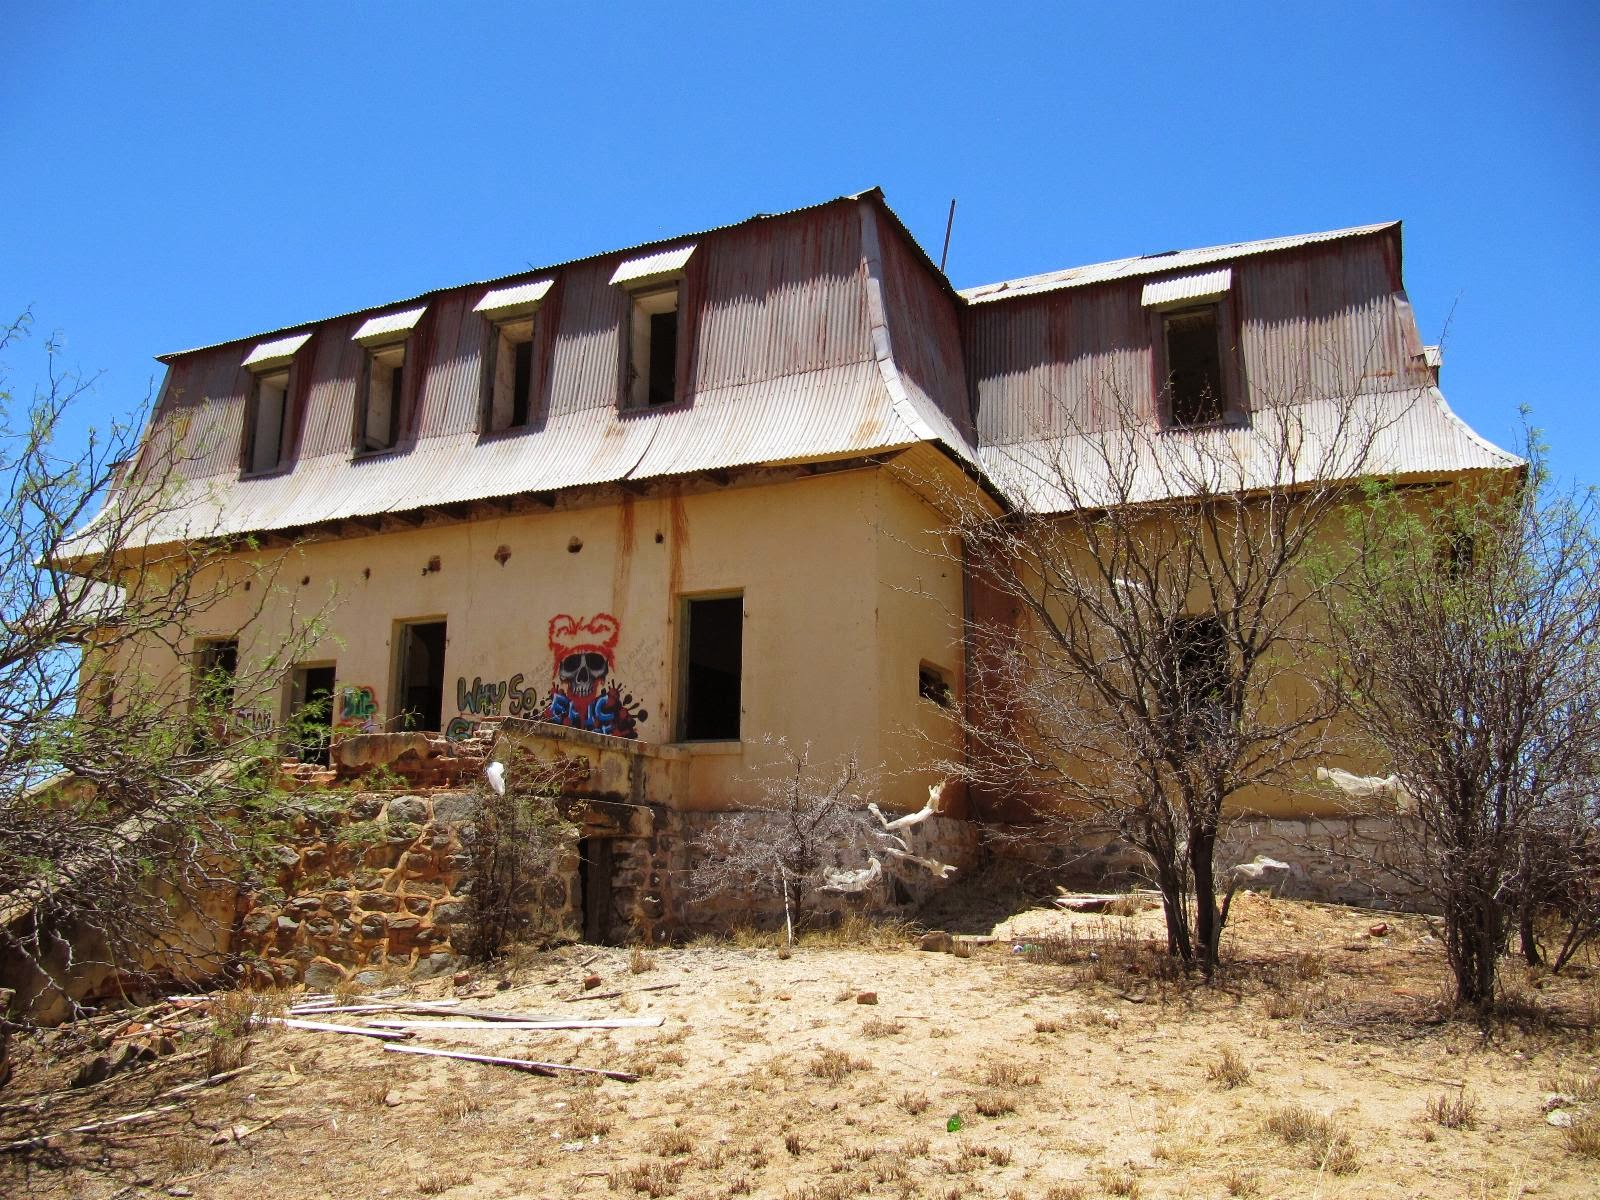 Liebig Ghost House Namibia - www.namibweb.com/house.htm